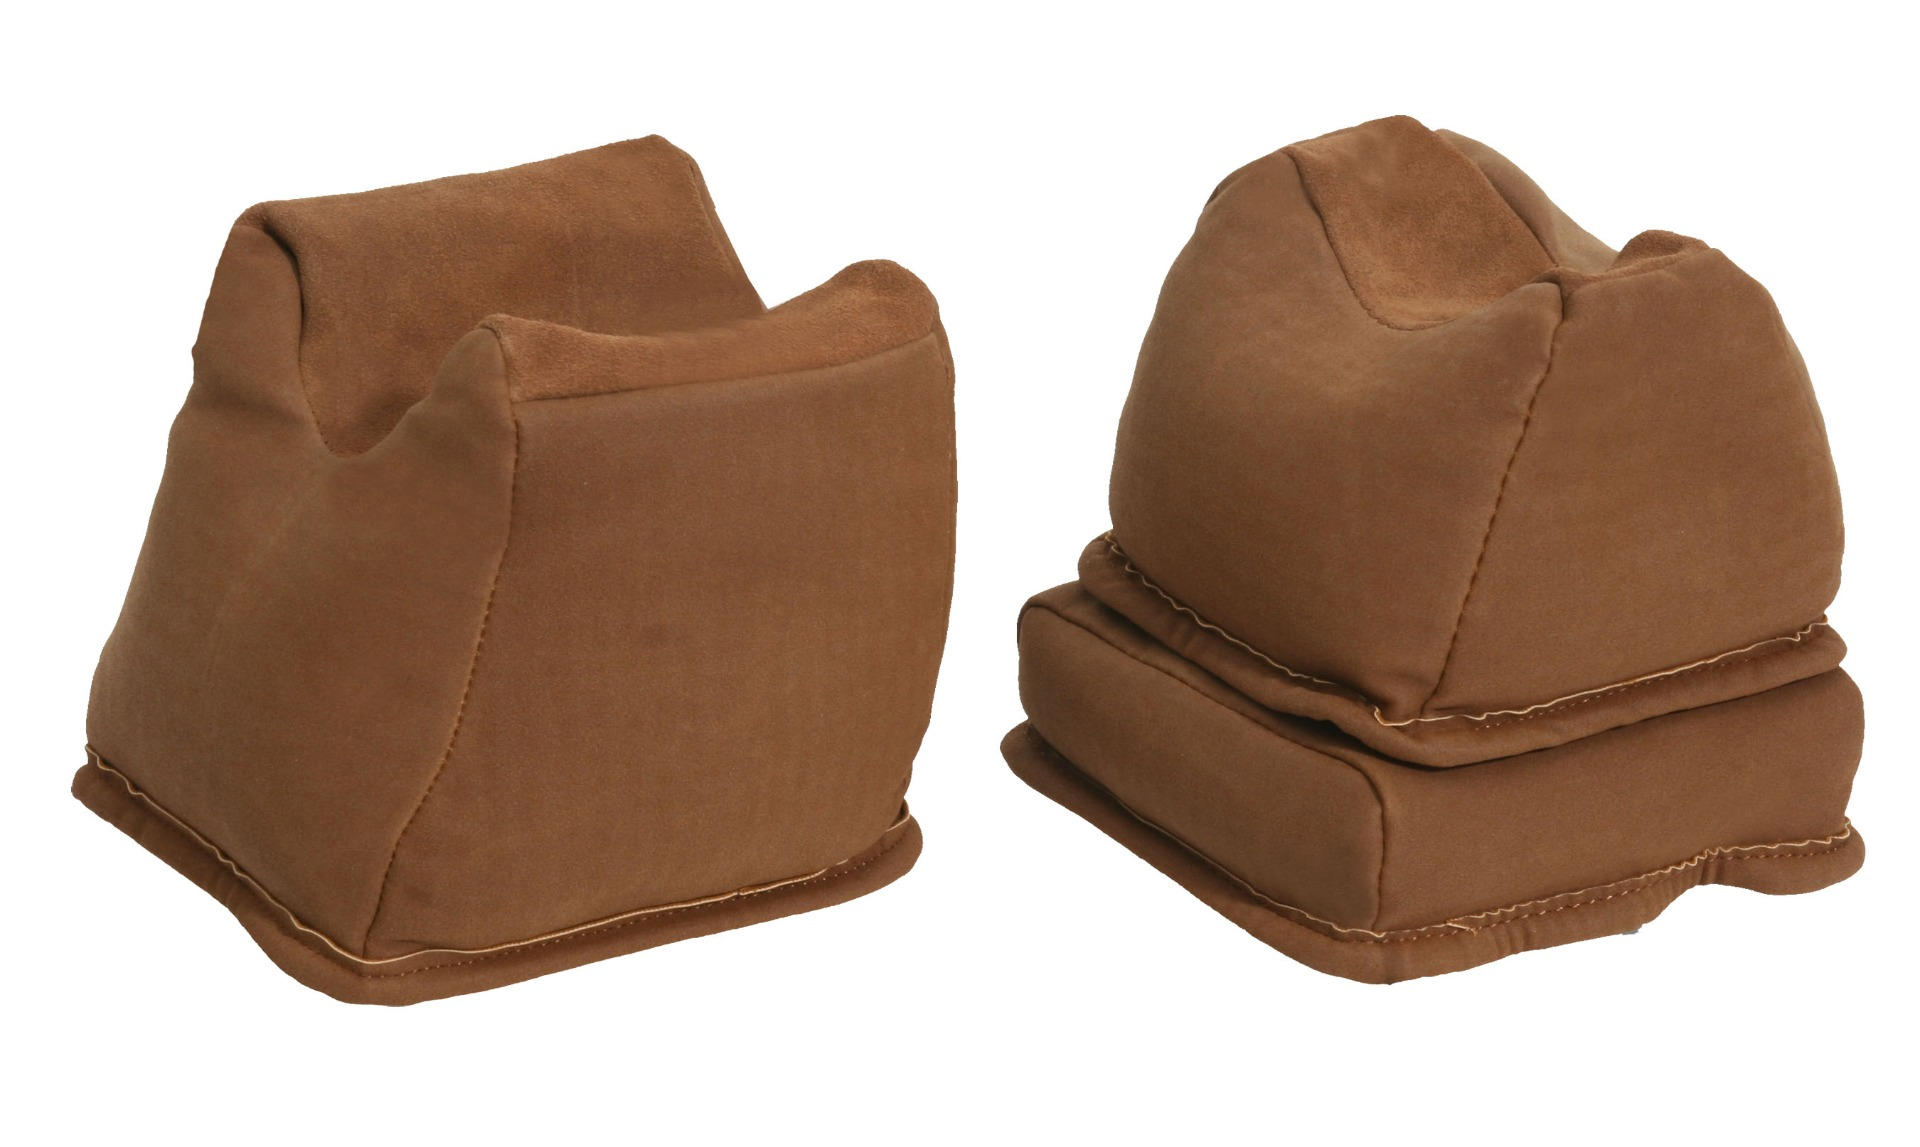 The Outdoor Connection Brown 3 Piece Bench Rest Bag Trio (Filled)